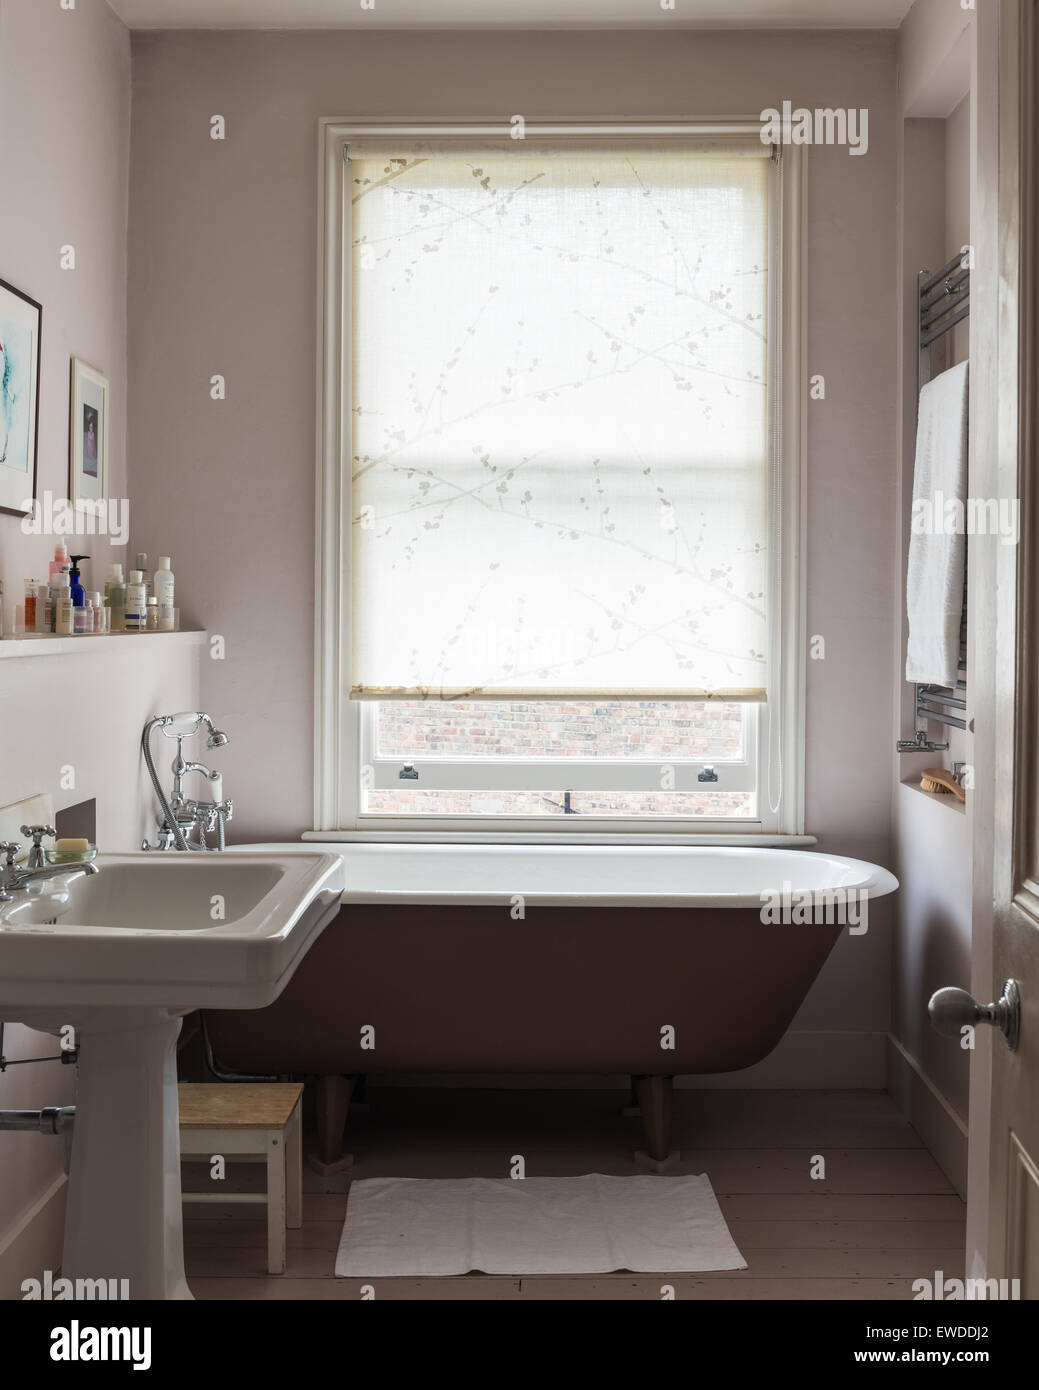 Free Standing Roll Top Bath In Bathroom With Wooden Flooring And Victorian  Style Basin